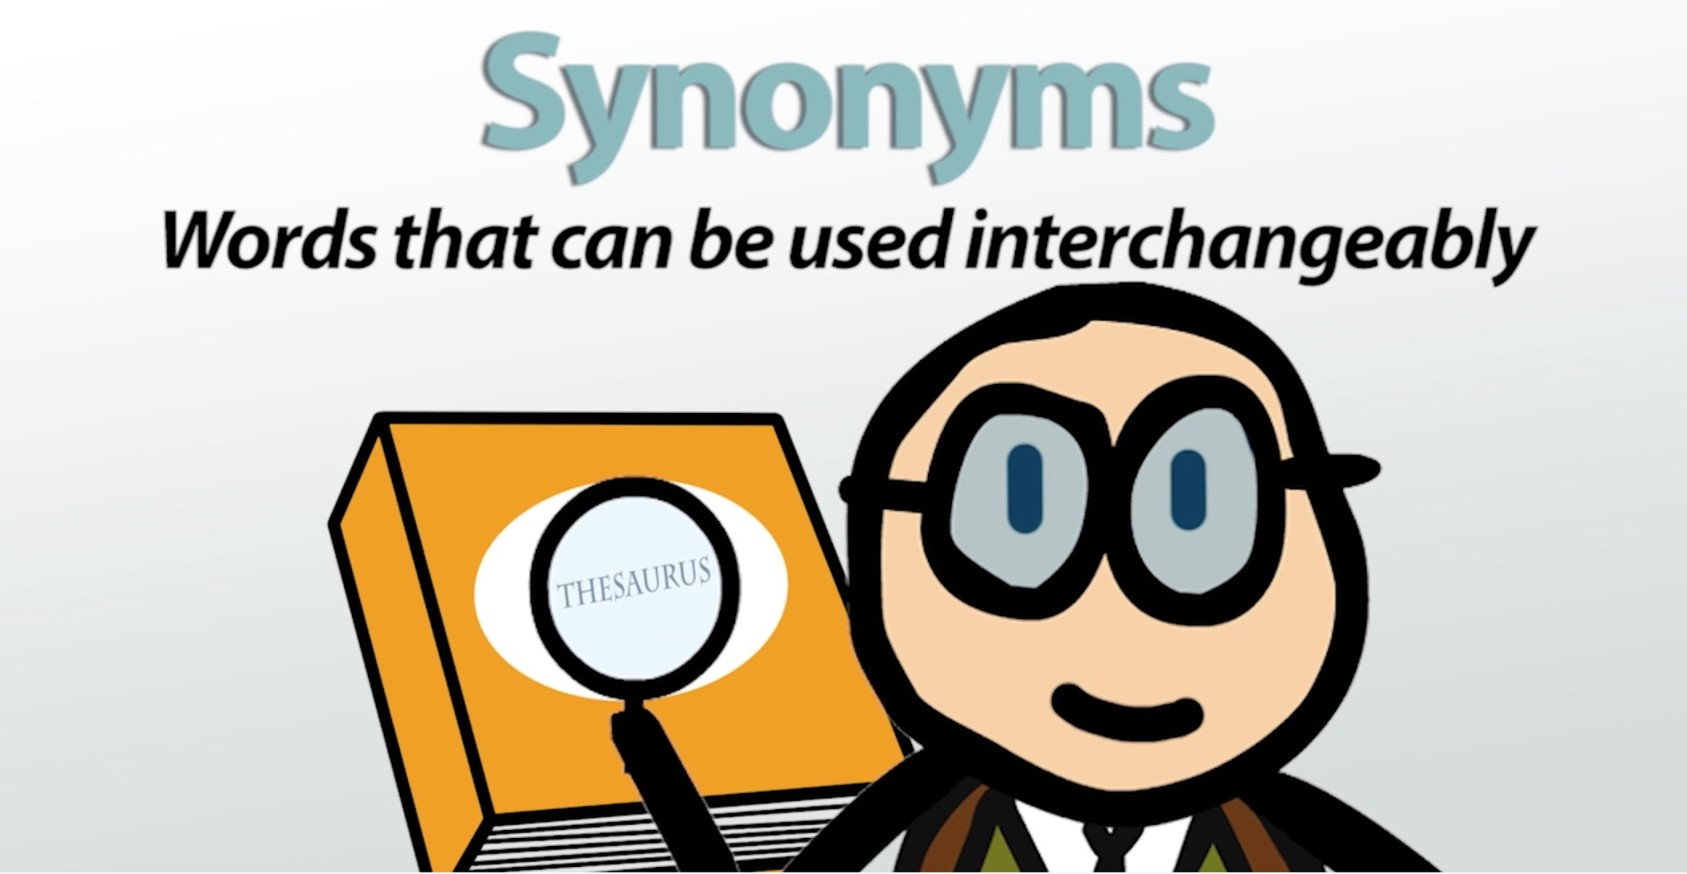 Synonyms, Antonyms, Homonyms, words related to Social Cause, Travel, Workplace